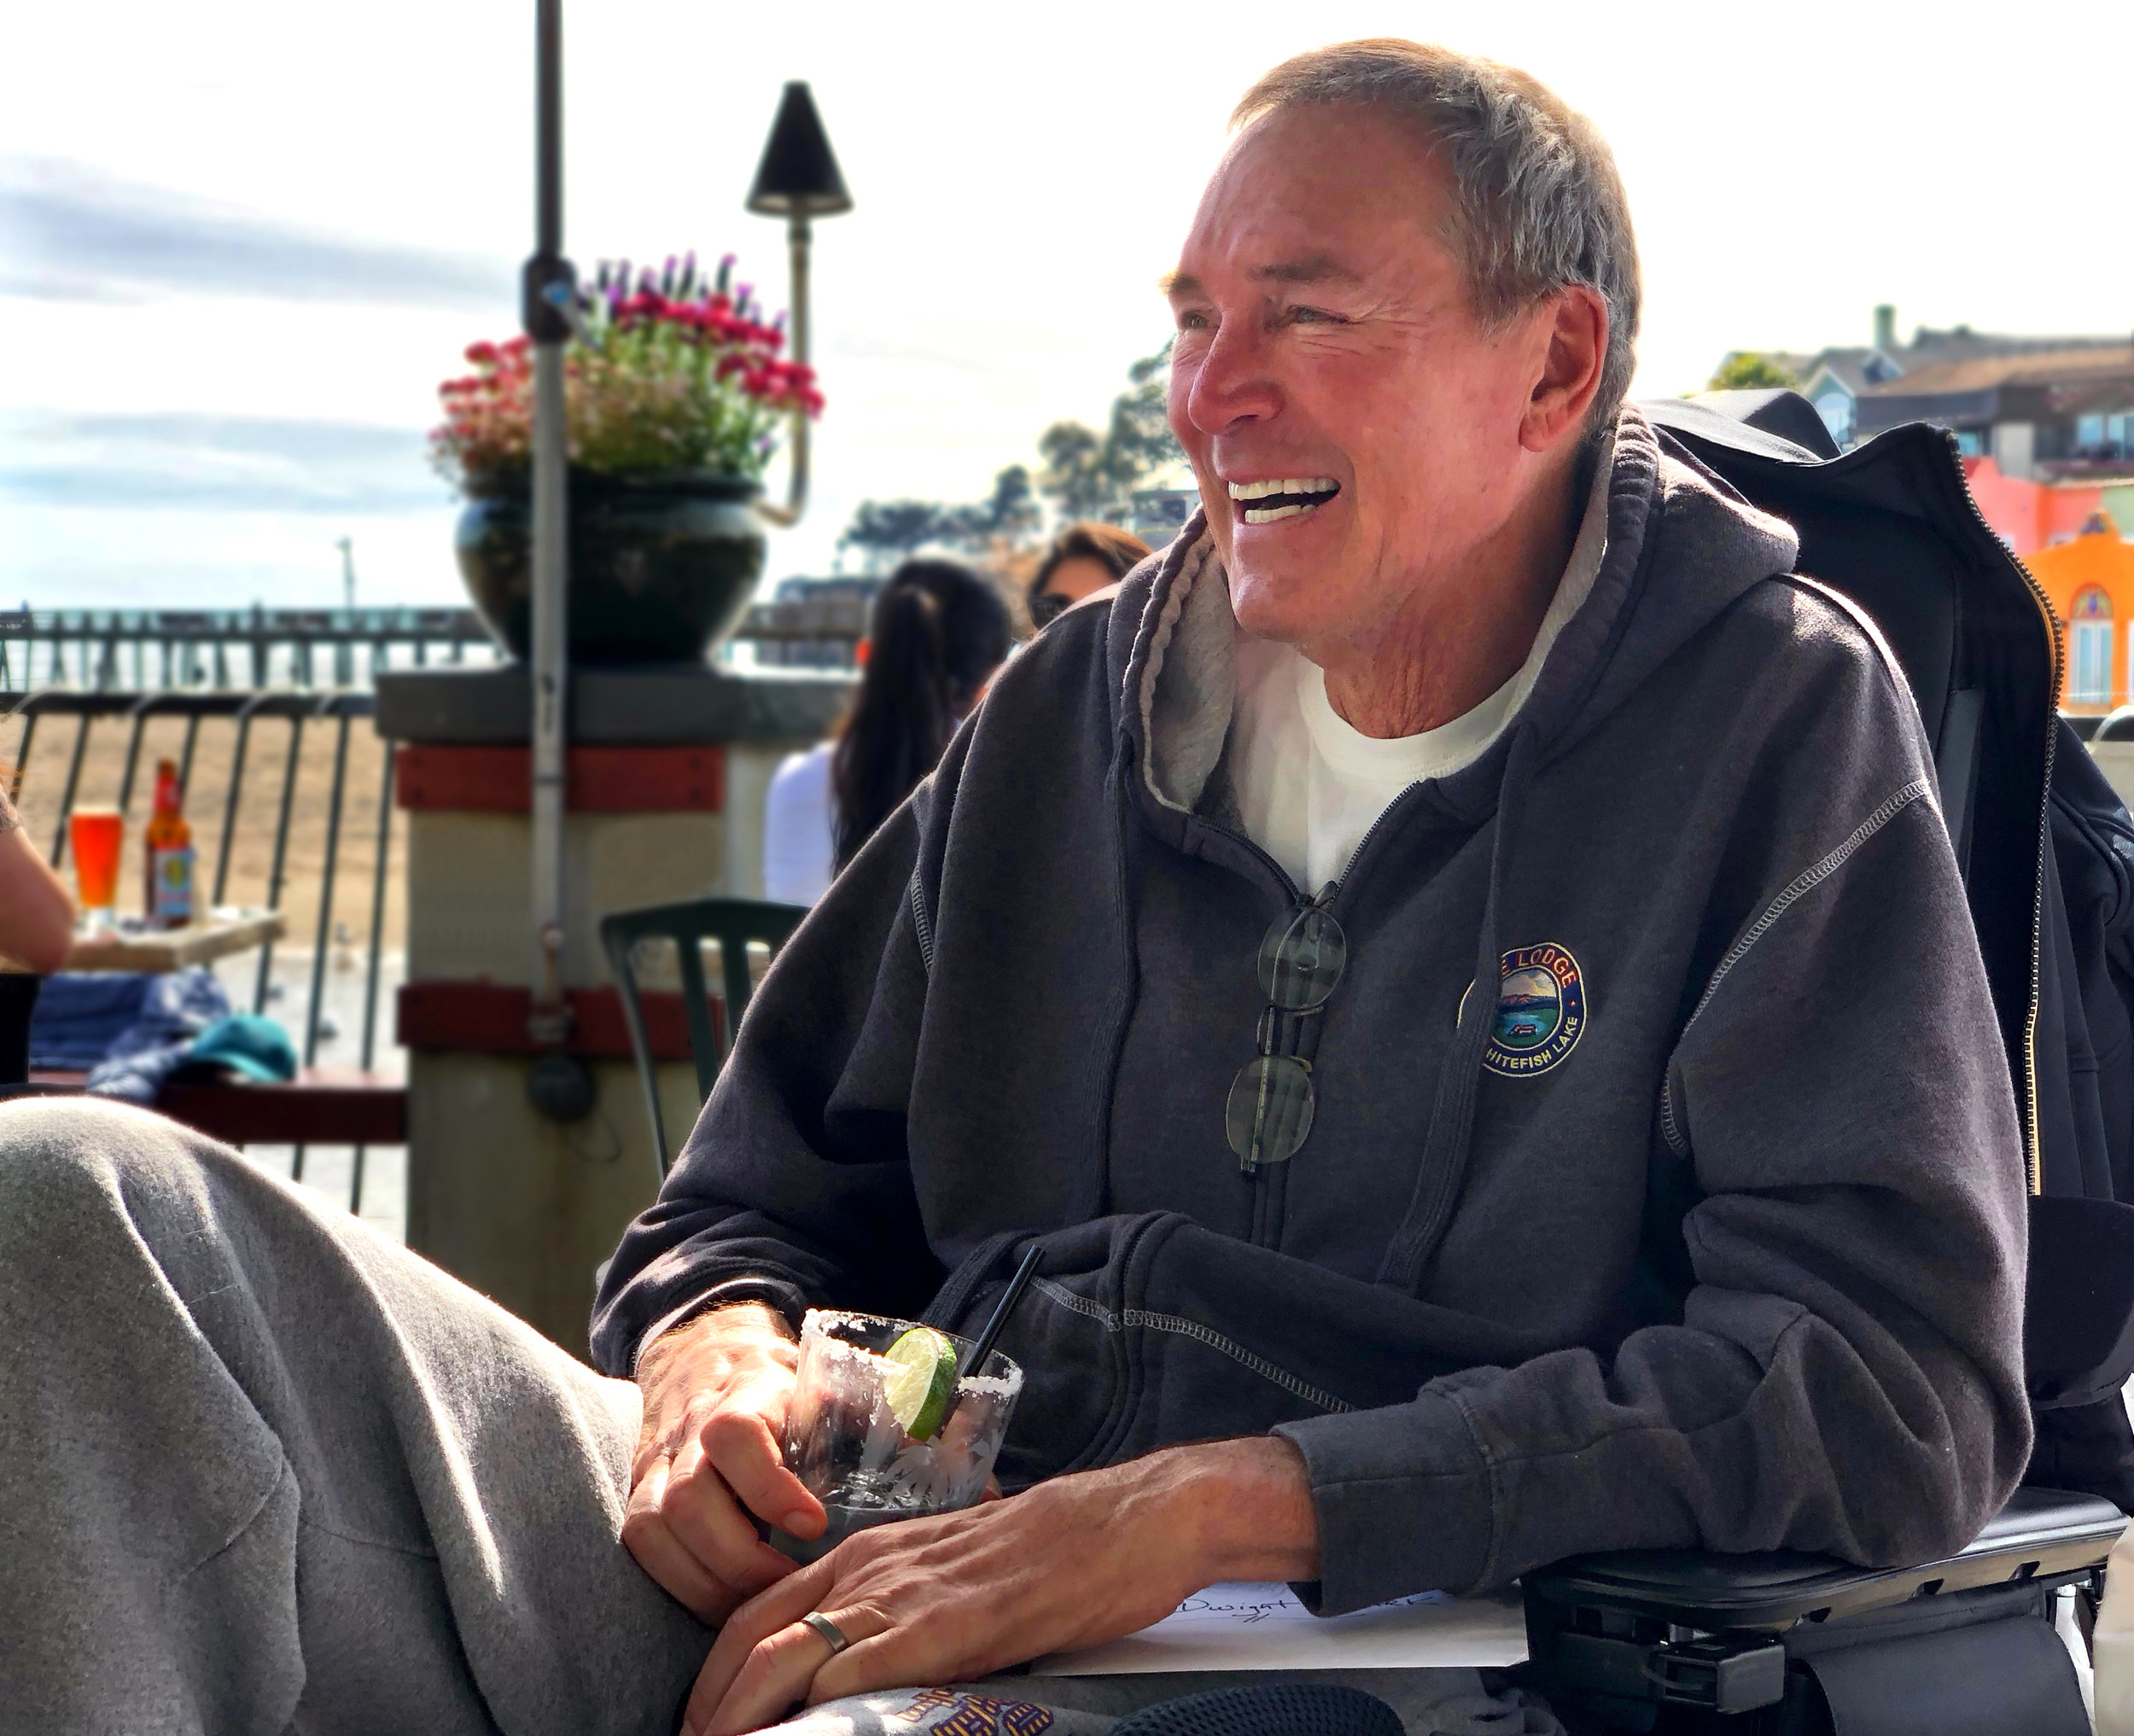 Dwight Clark at lunch with his buddies in Capitola, California, on March 6, 2018.